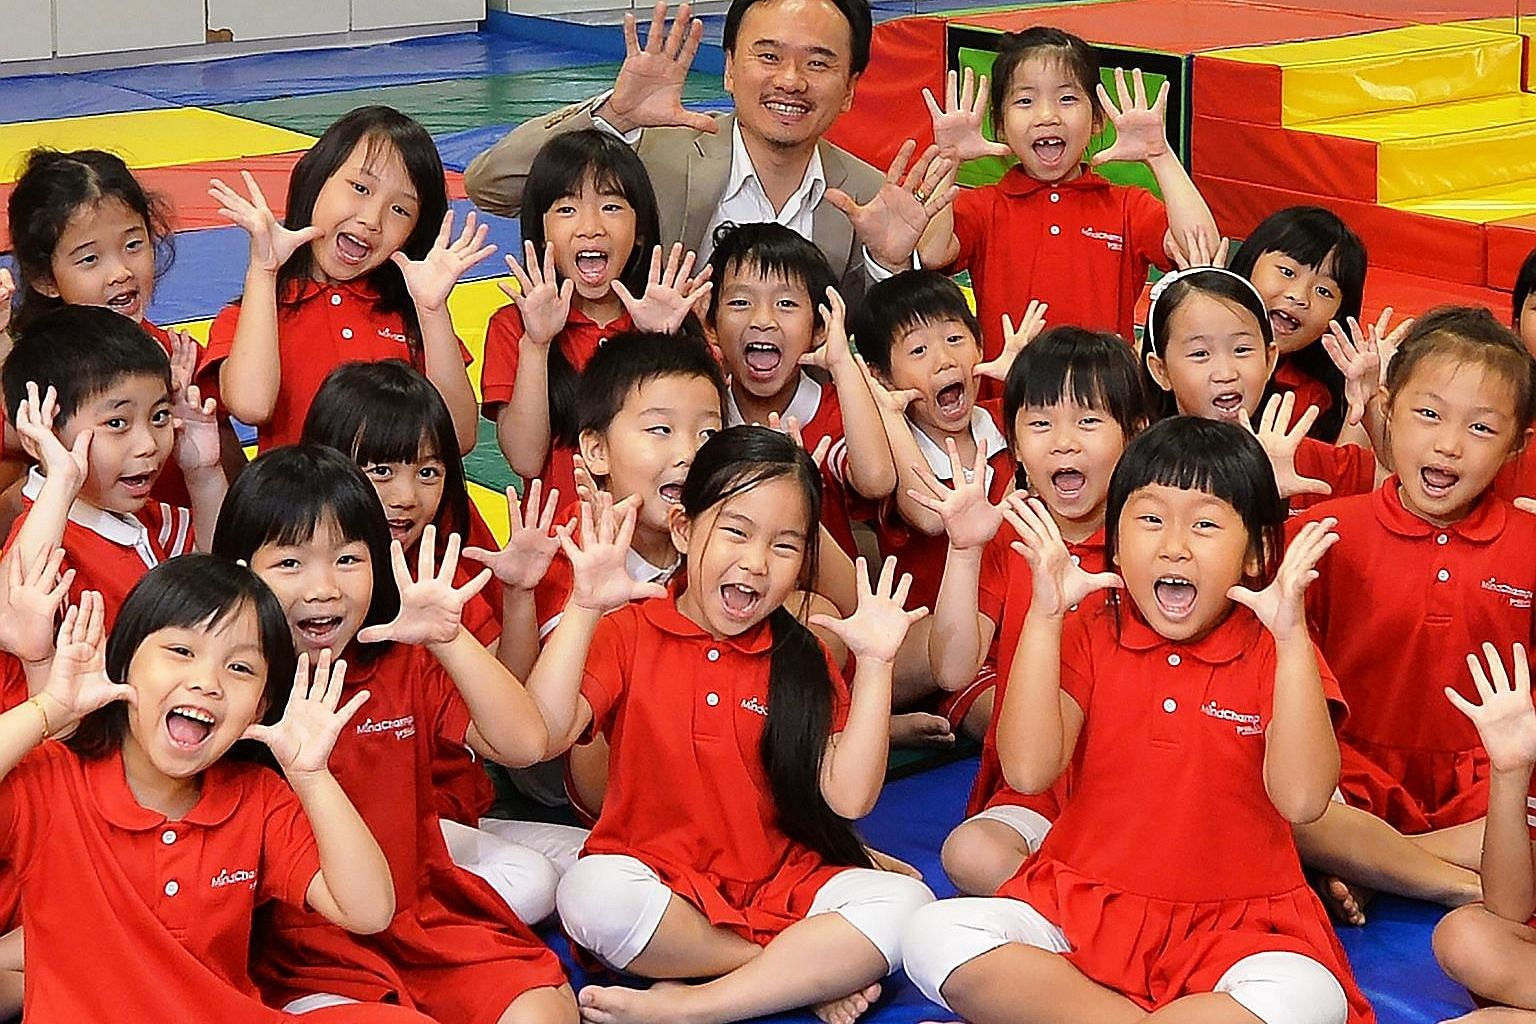 MindChamps founder and chief executive officer David Chiem with some of the pre-school group's children.